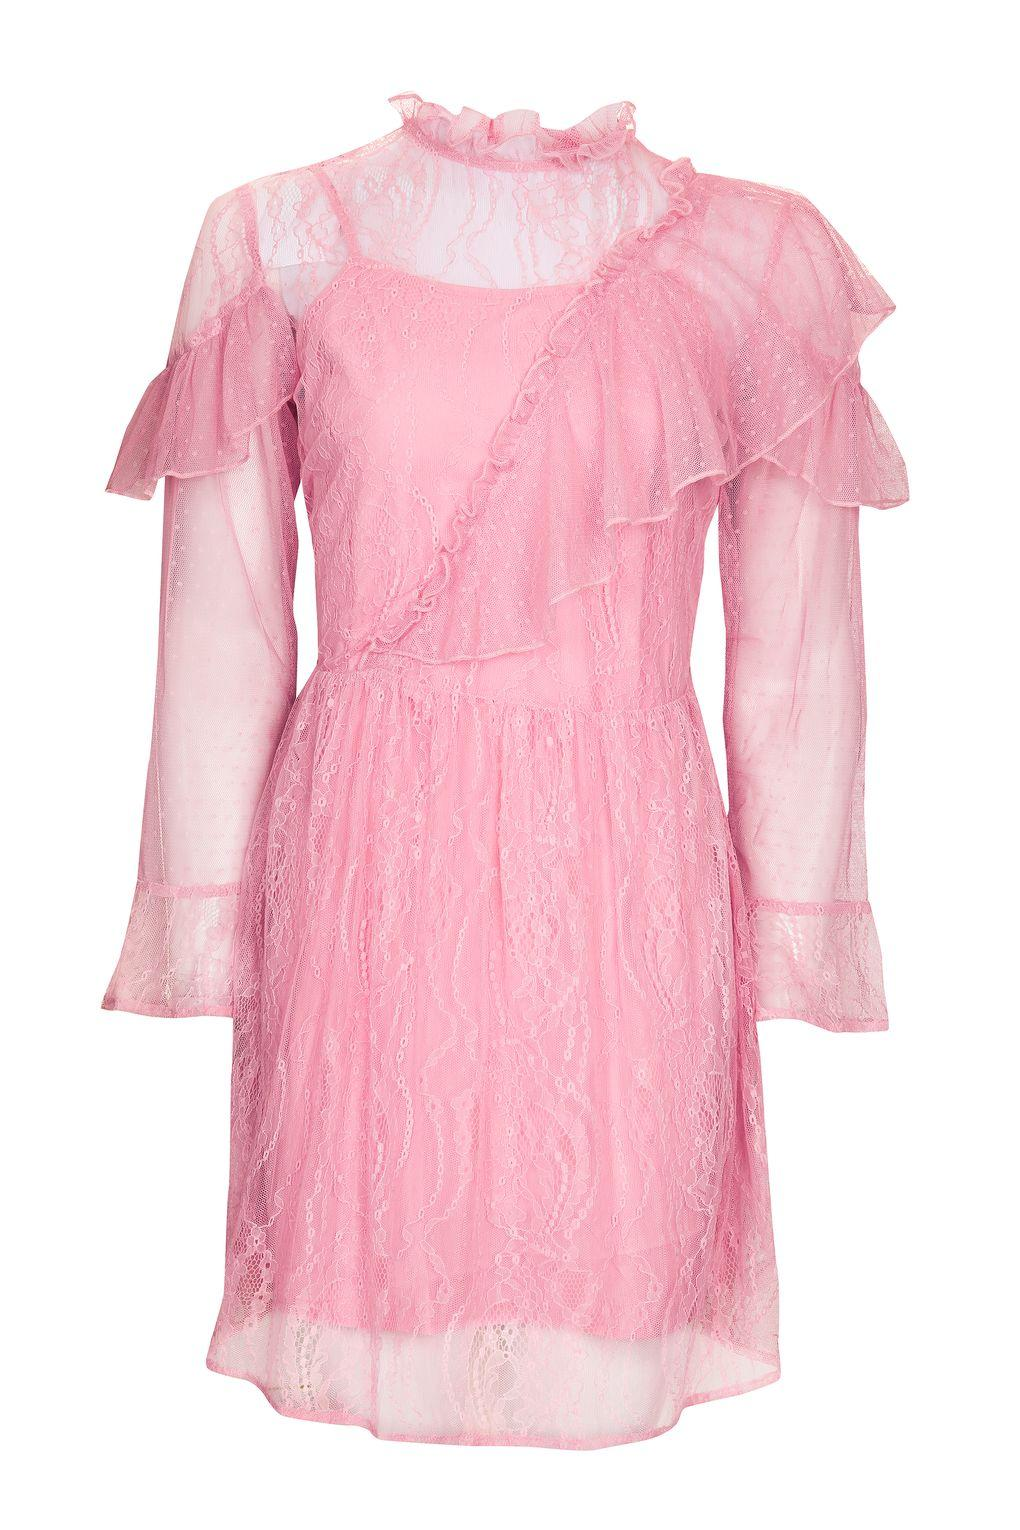 Topshop Flute Sleeve Lace Dress In Pink Lyst